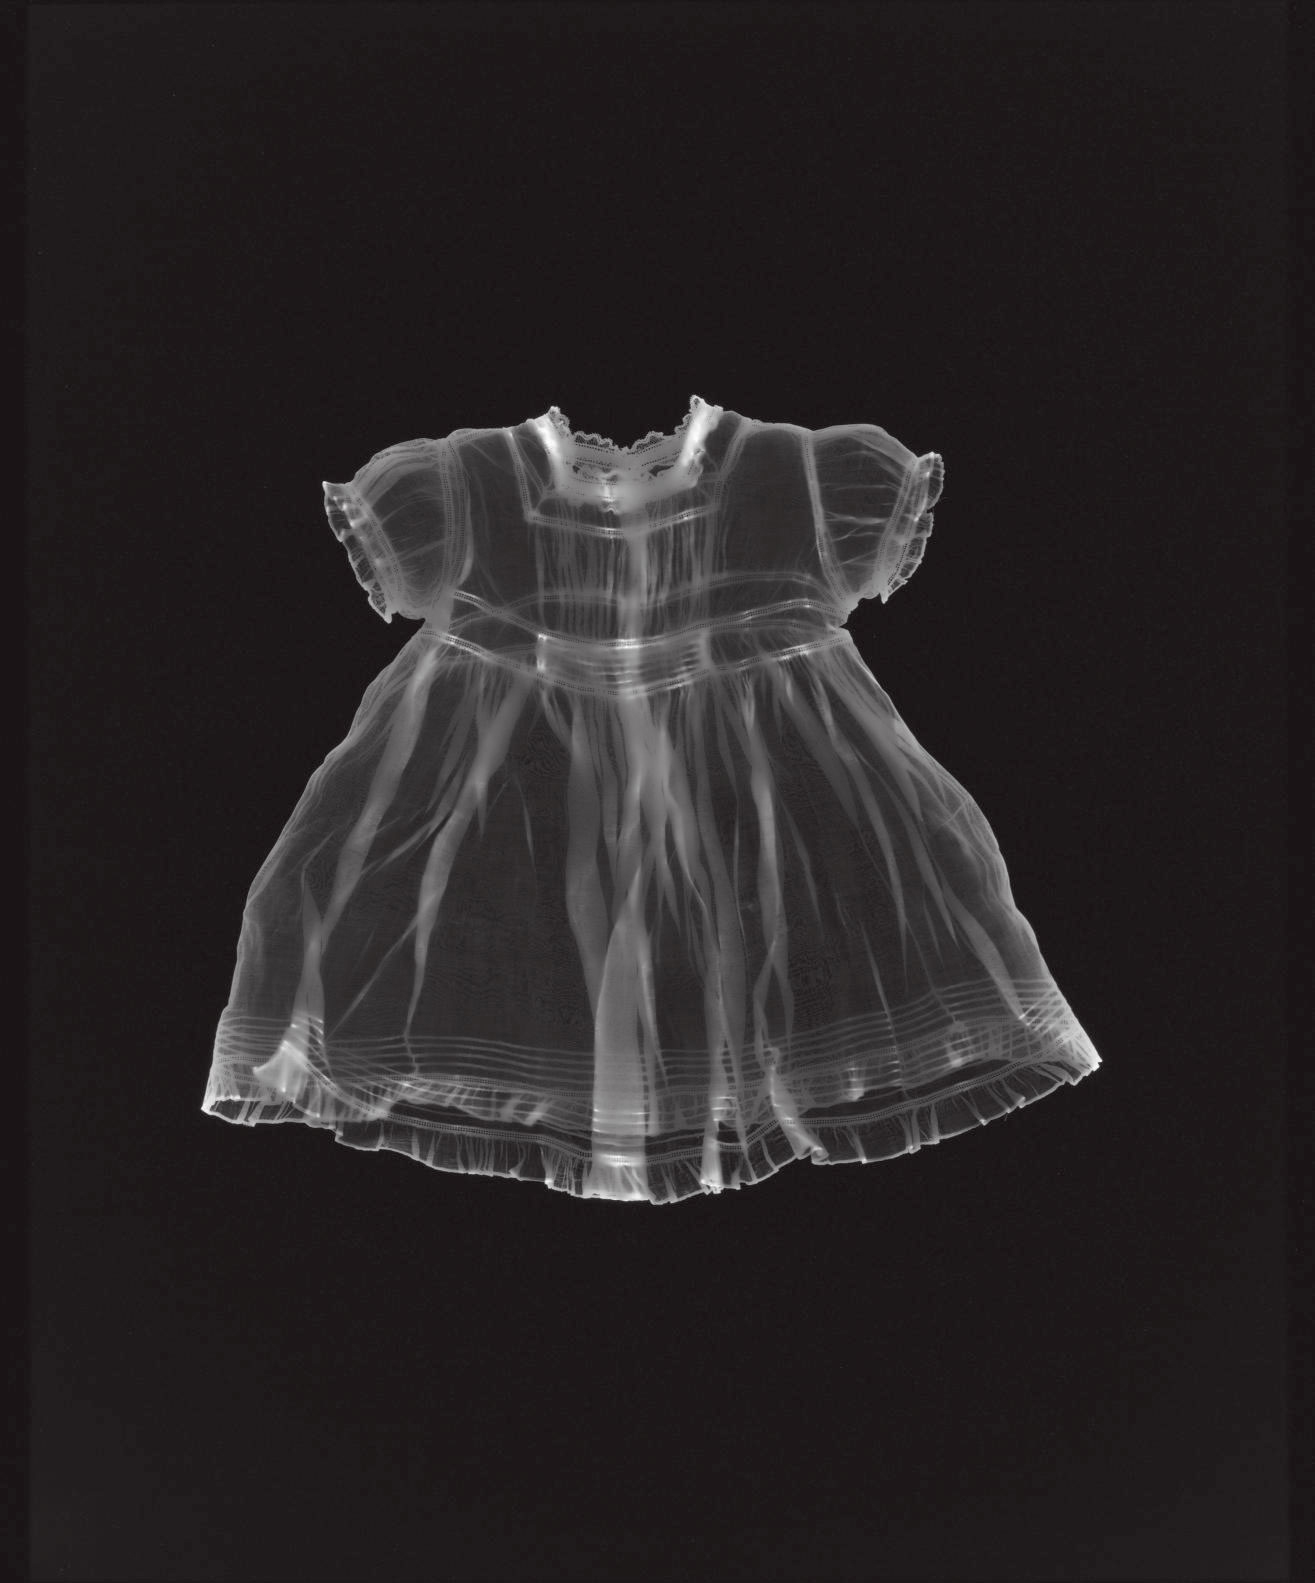 Untitled, from the series My Ghost, 2001